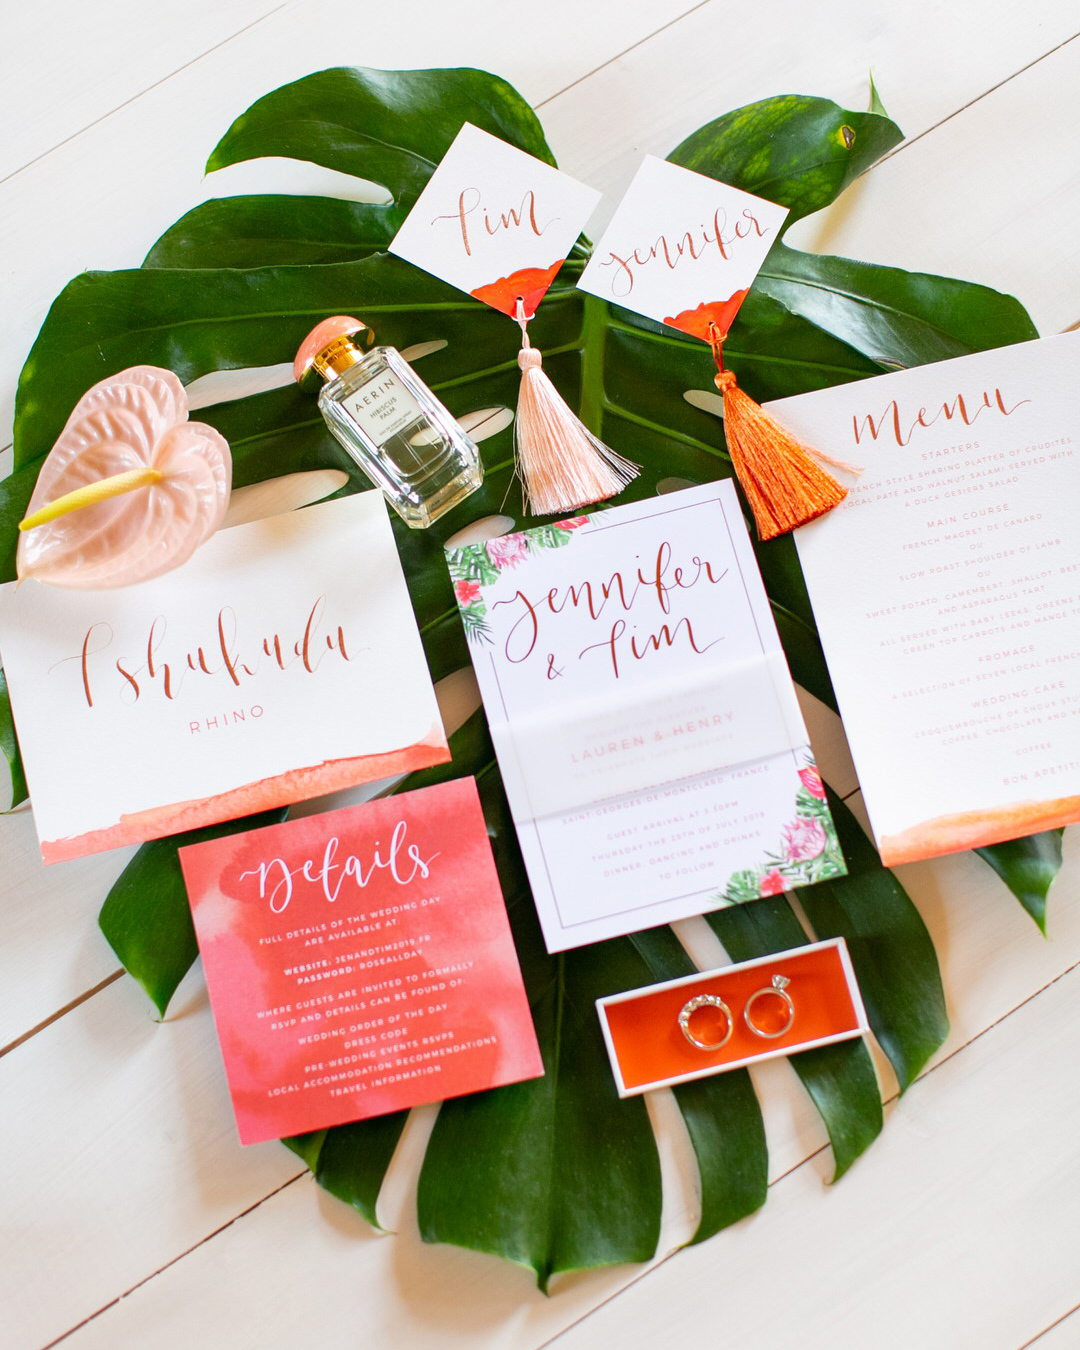 jen tim wedding tropical pink invites on giant leaf